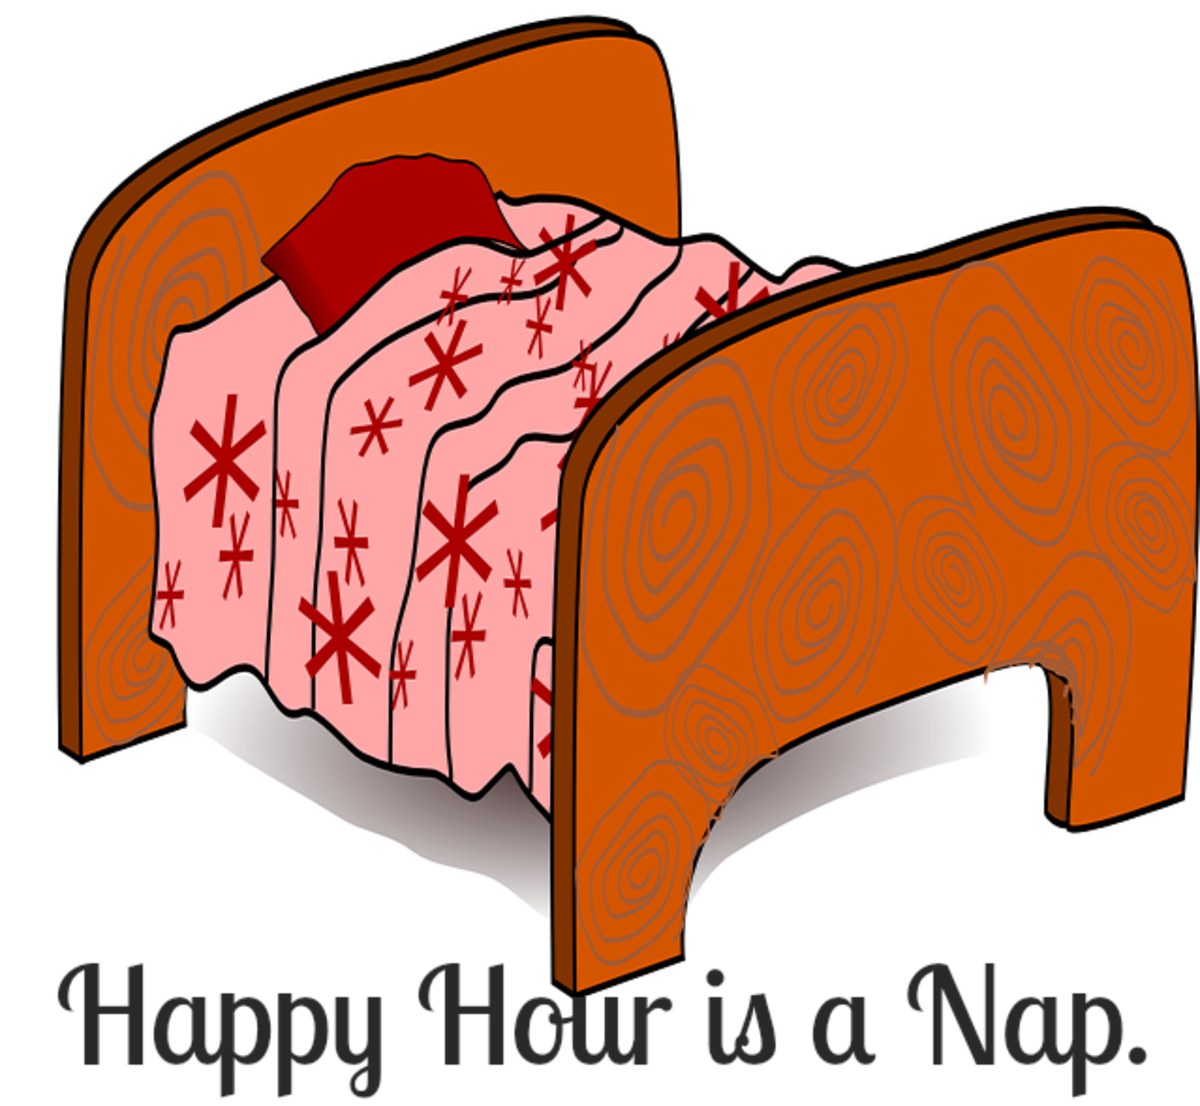 Happy hour is a nap.